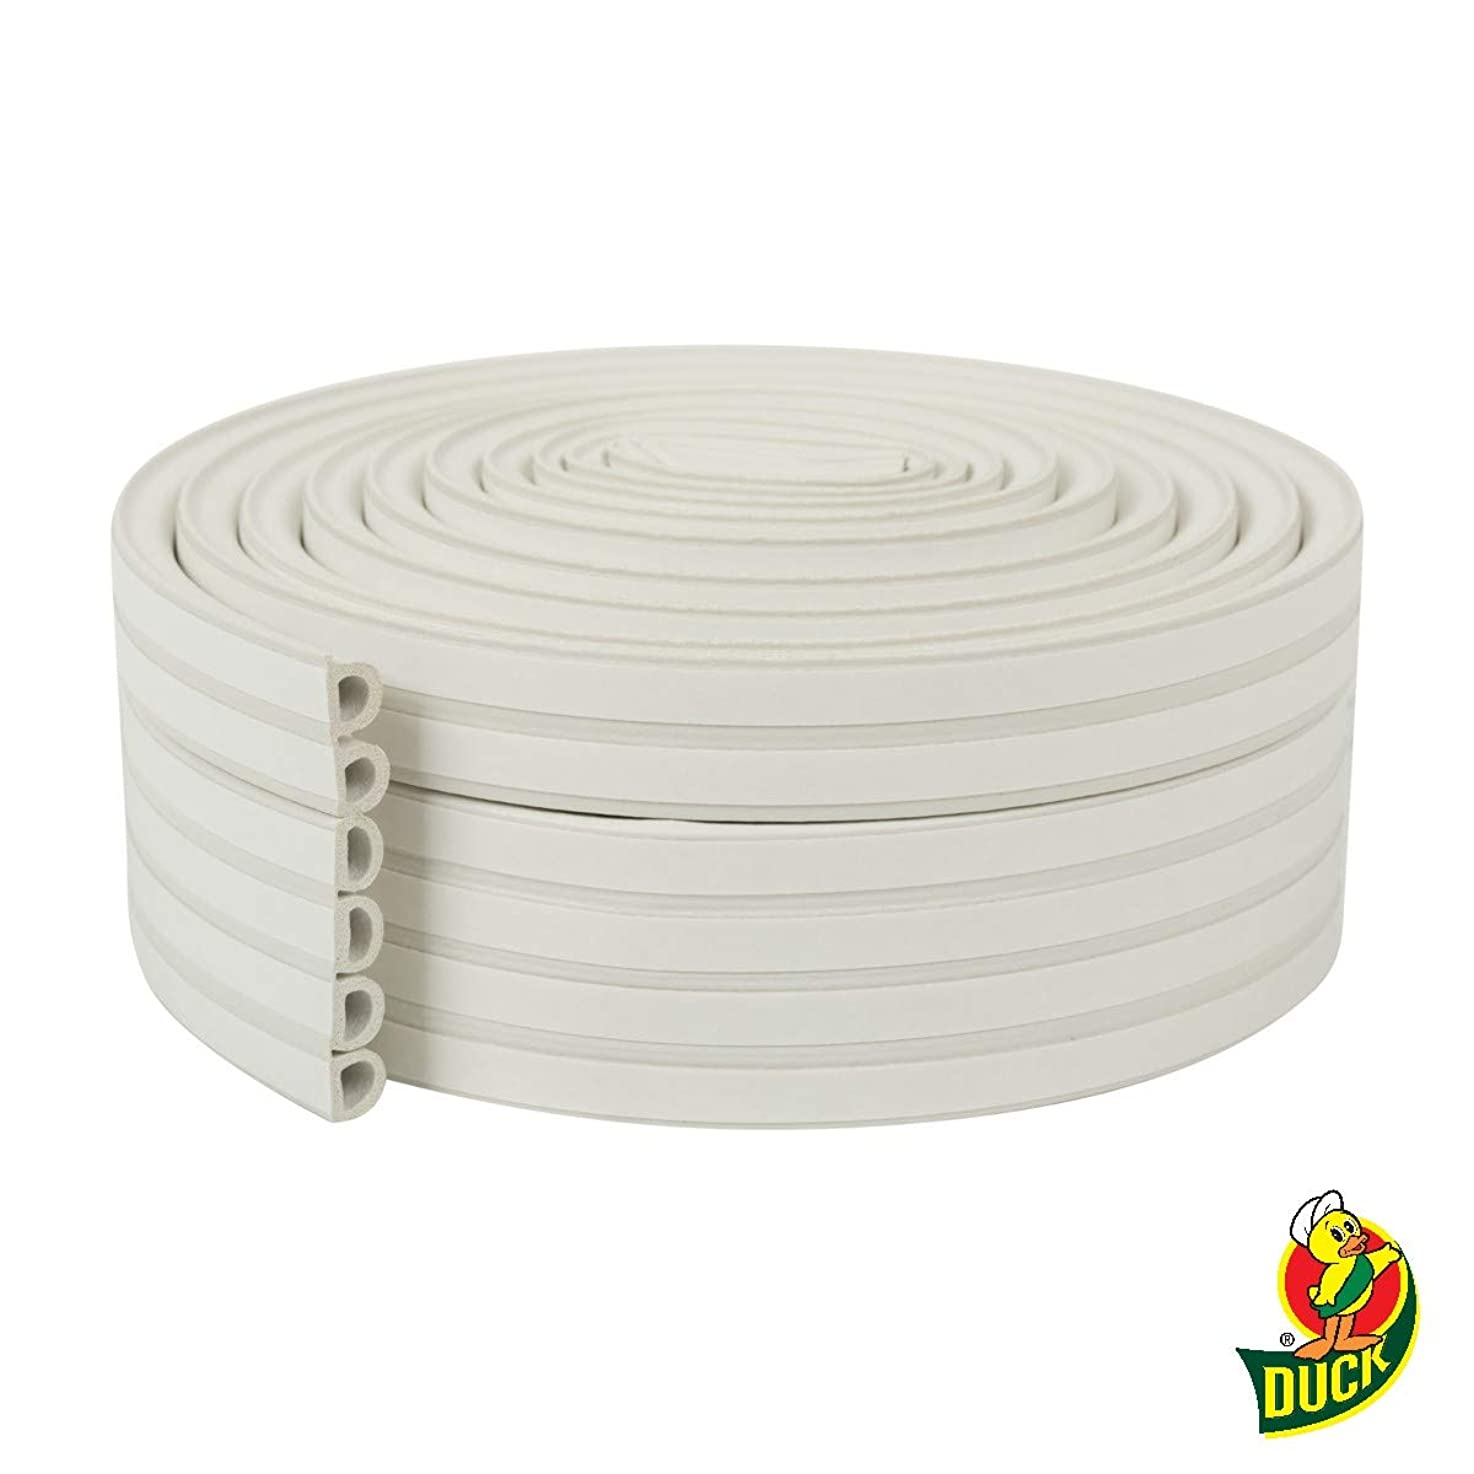 Duck Brand Heavy Duty Self-Adhesive Weatherstrip Seal For Large Gaps, White, 3/8 inch x 1/4 inch x 17', 3 Seals, 285231